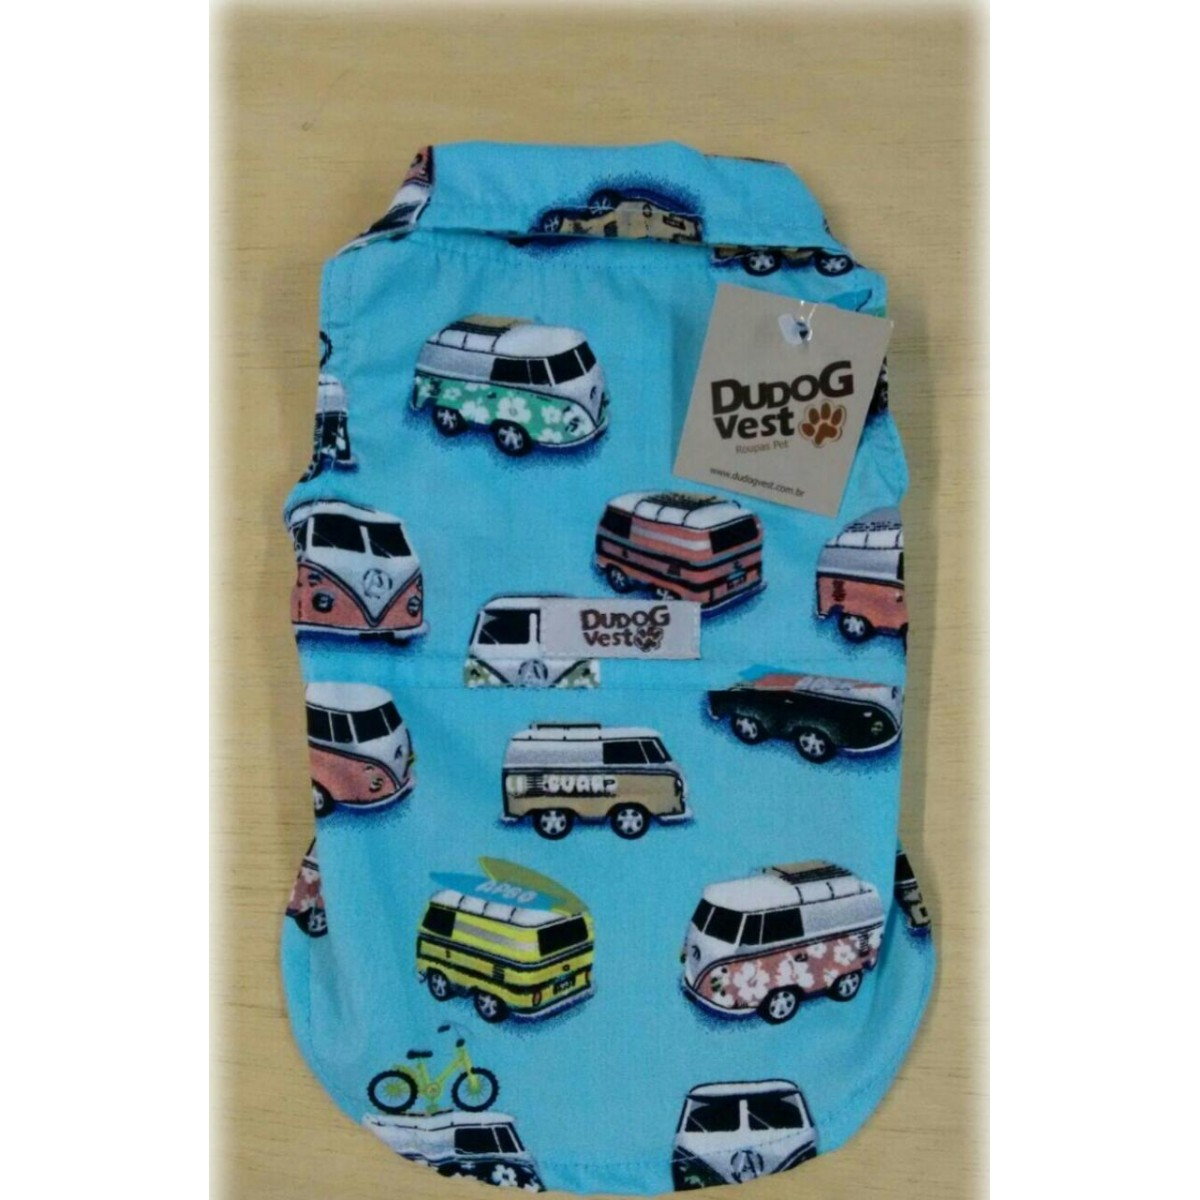 CAMISA KOMBI - Shoppinho Animal